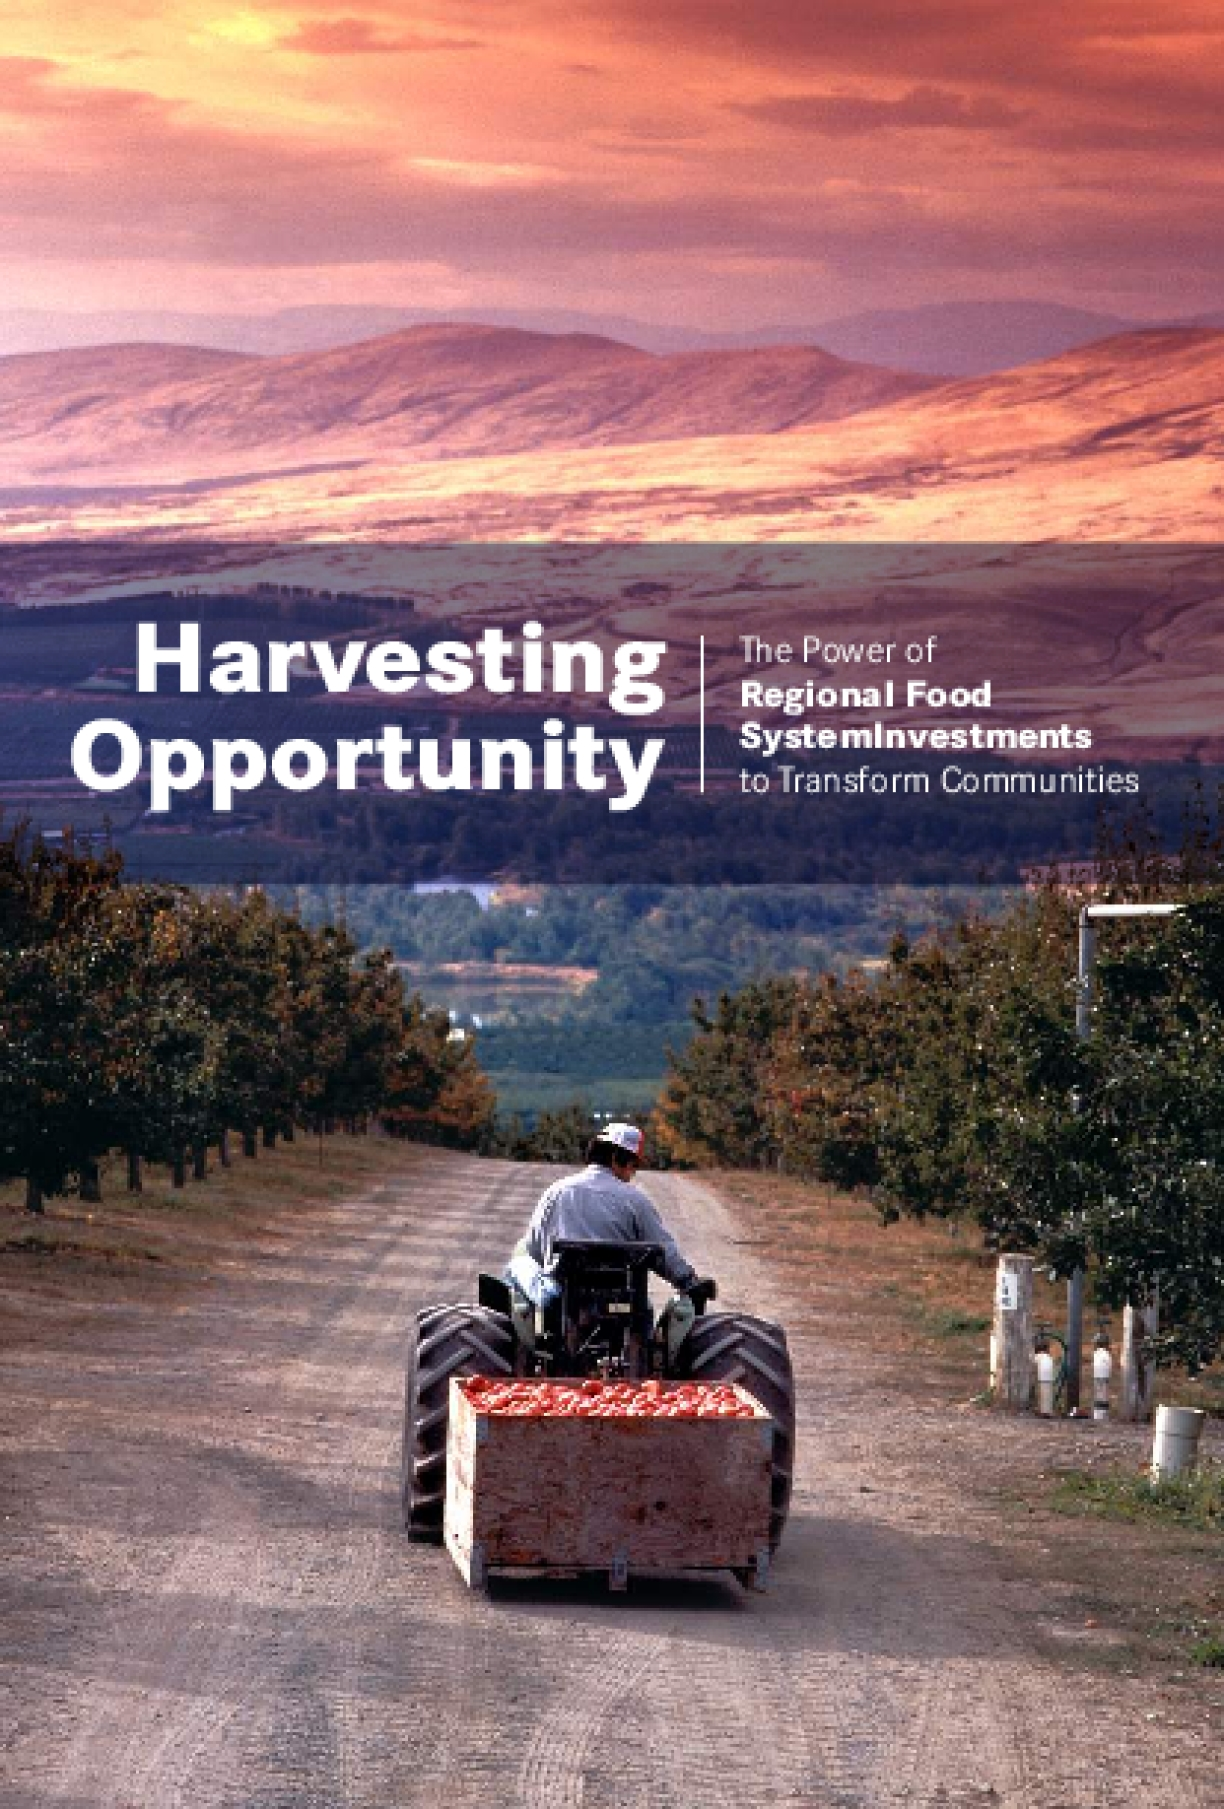 Harvesting Opportunity: The Power of Regional Food Systems to Transform Communities